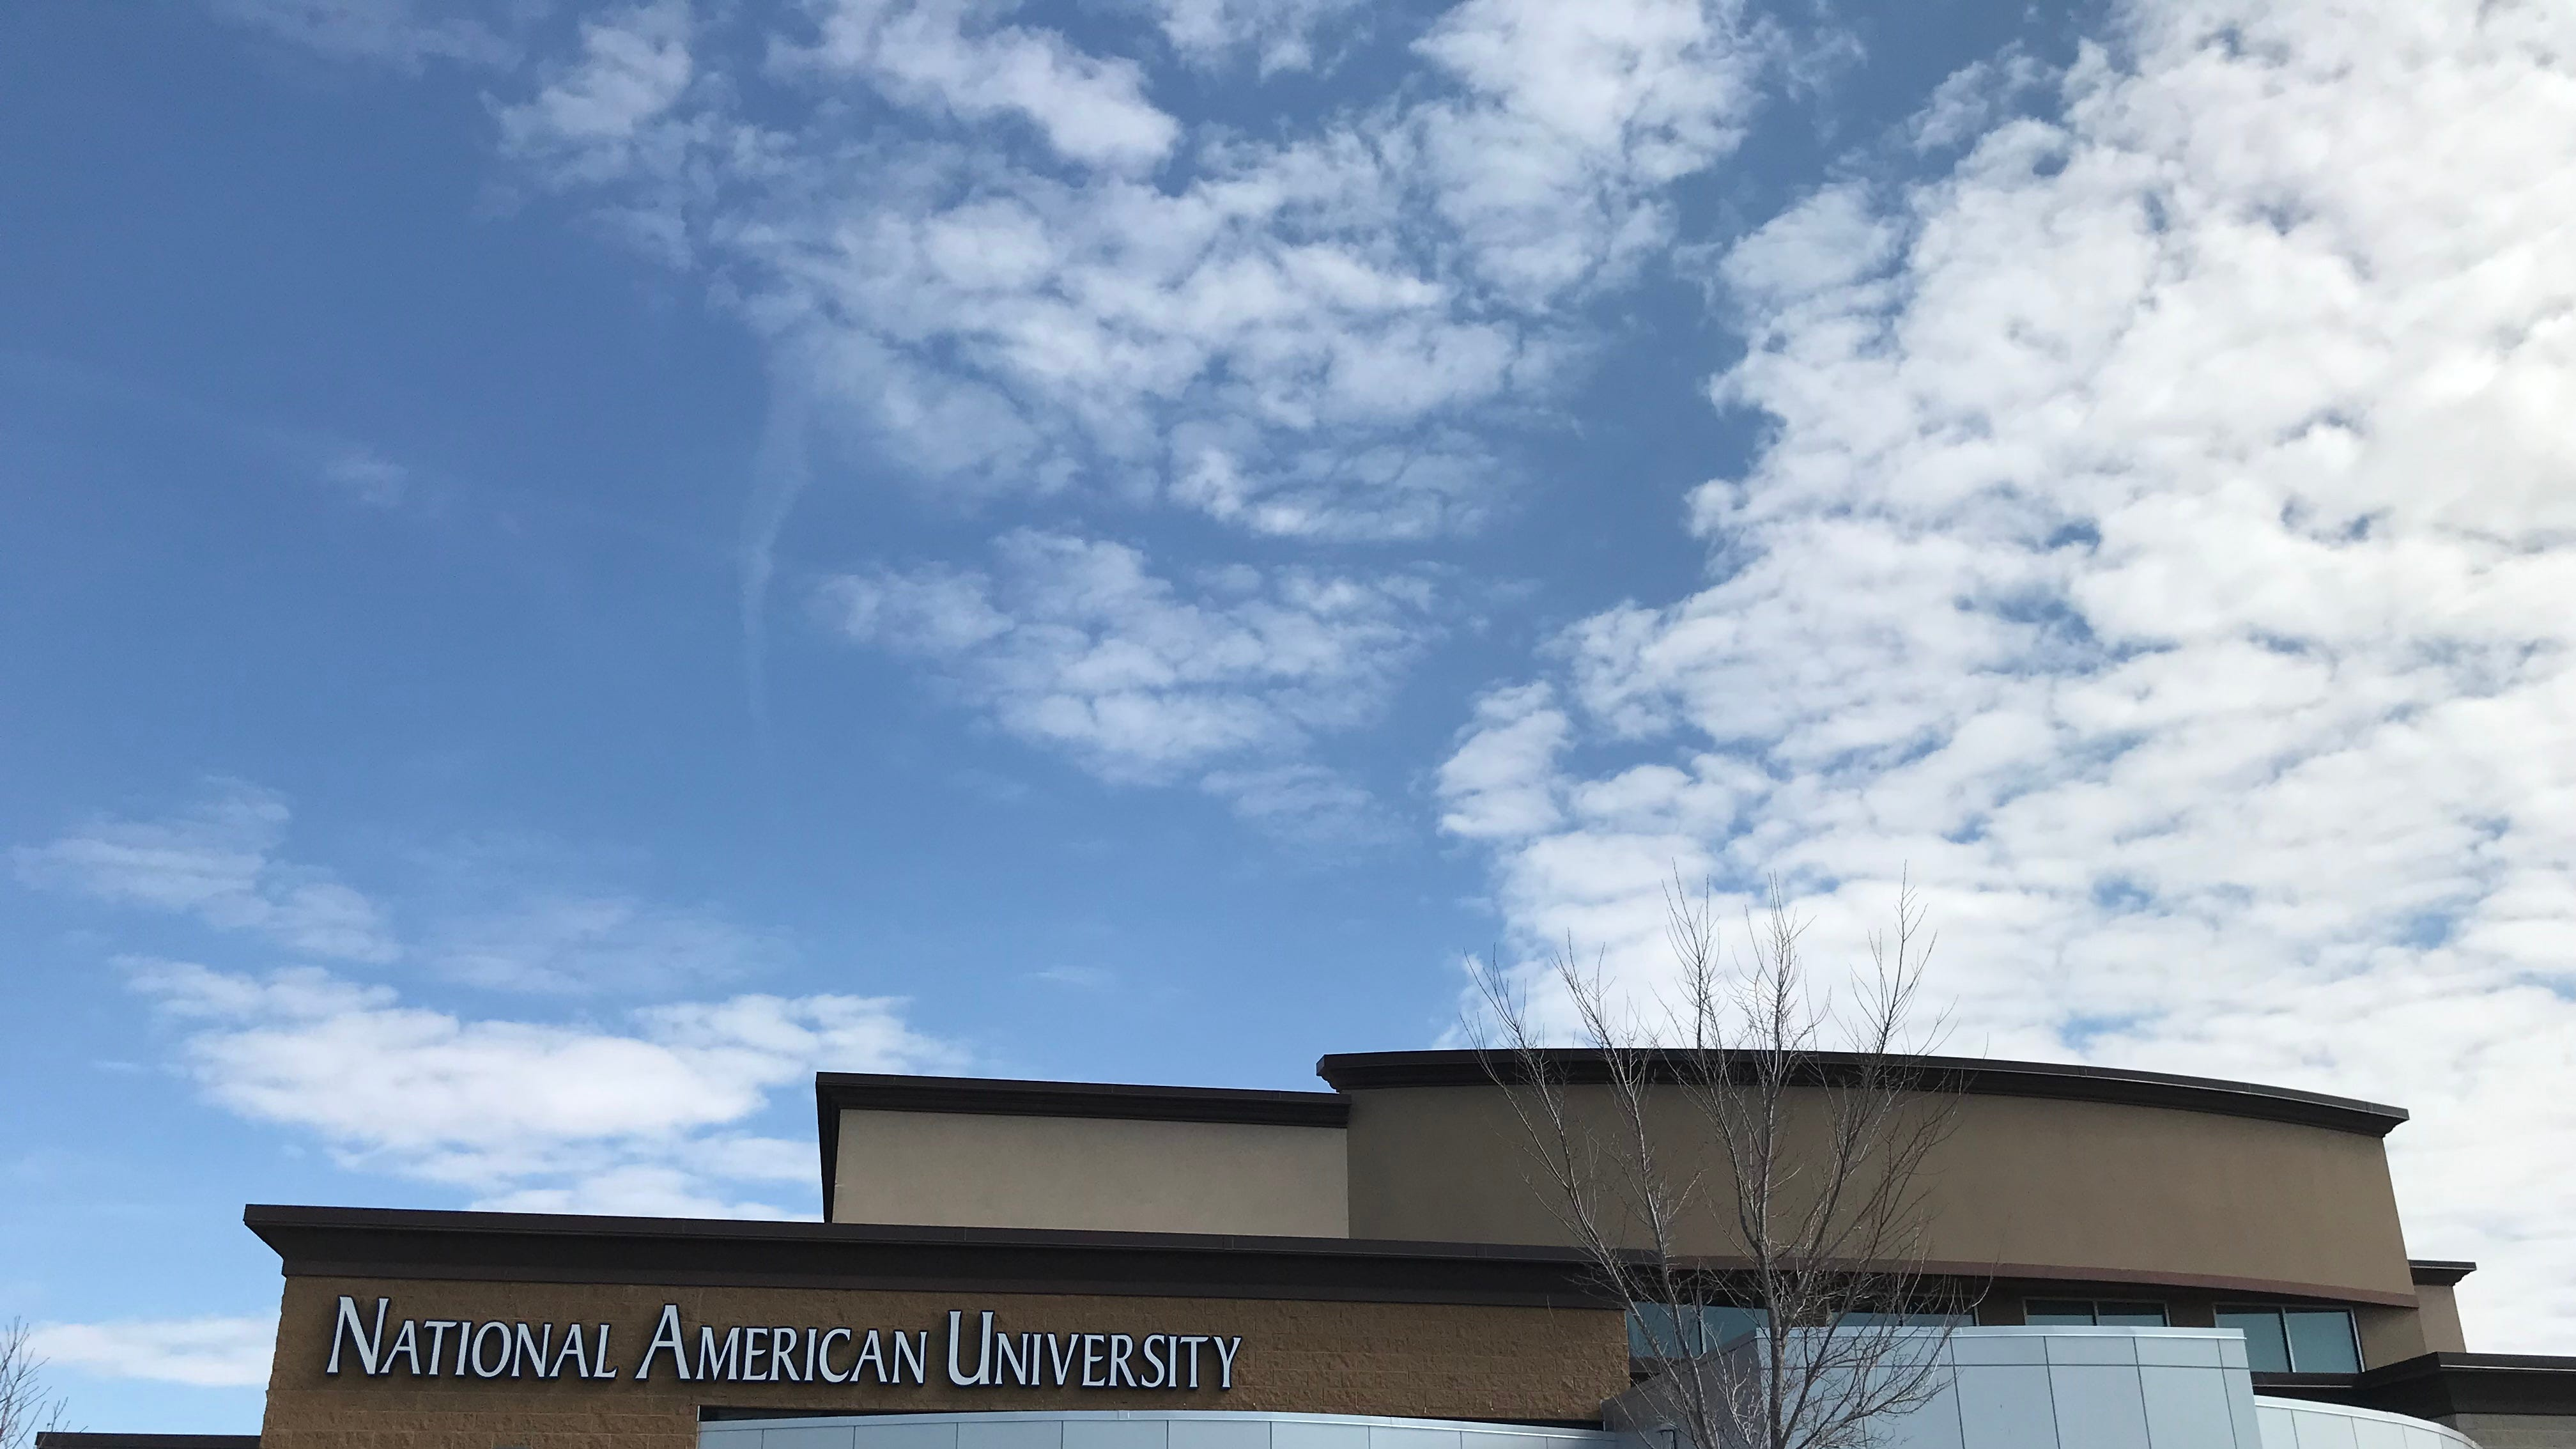 National American University In Sioux Falls To Close As Classes